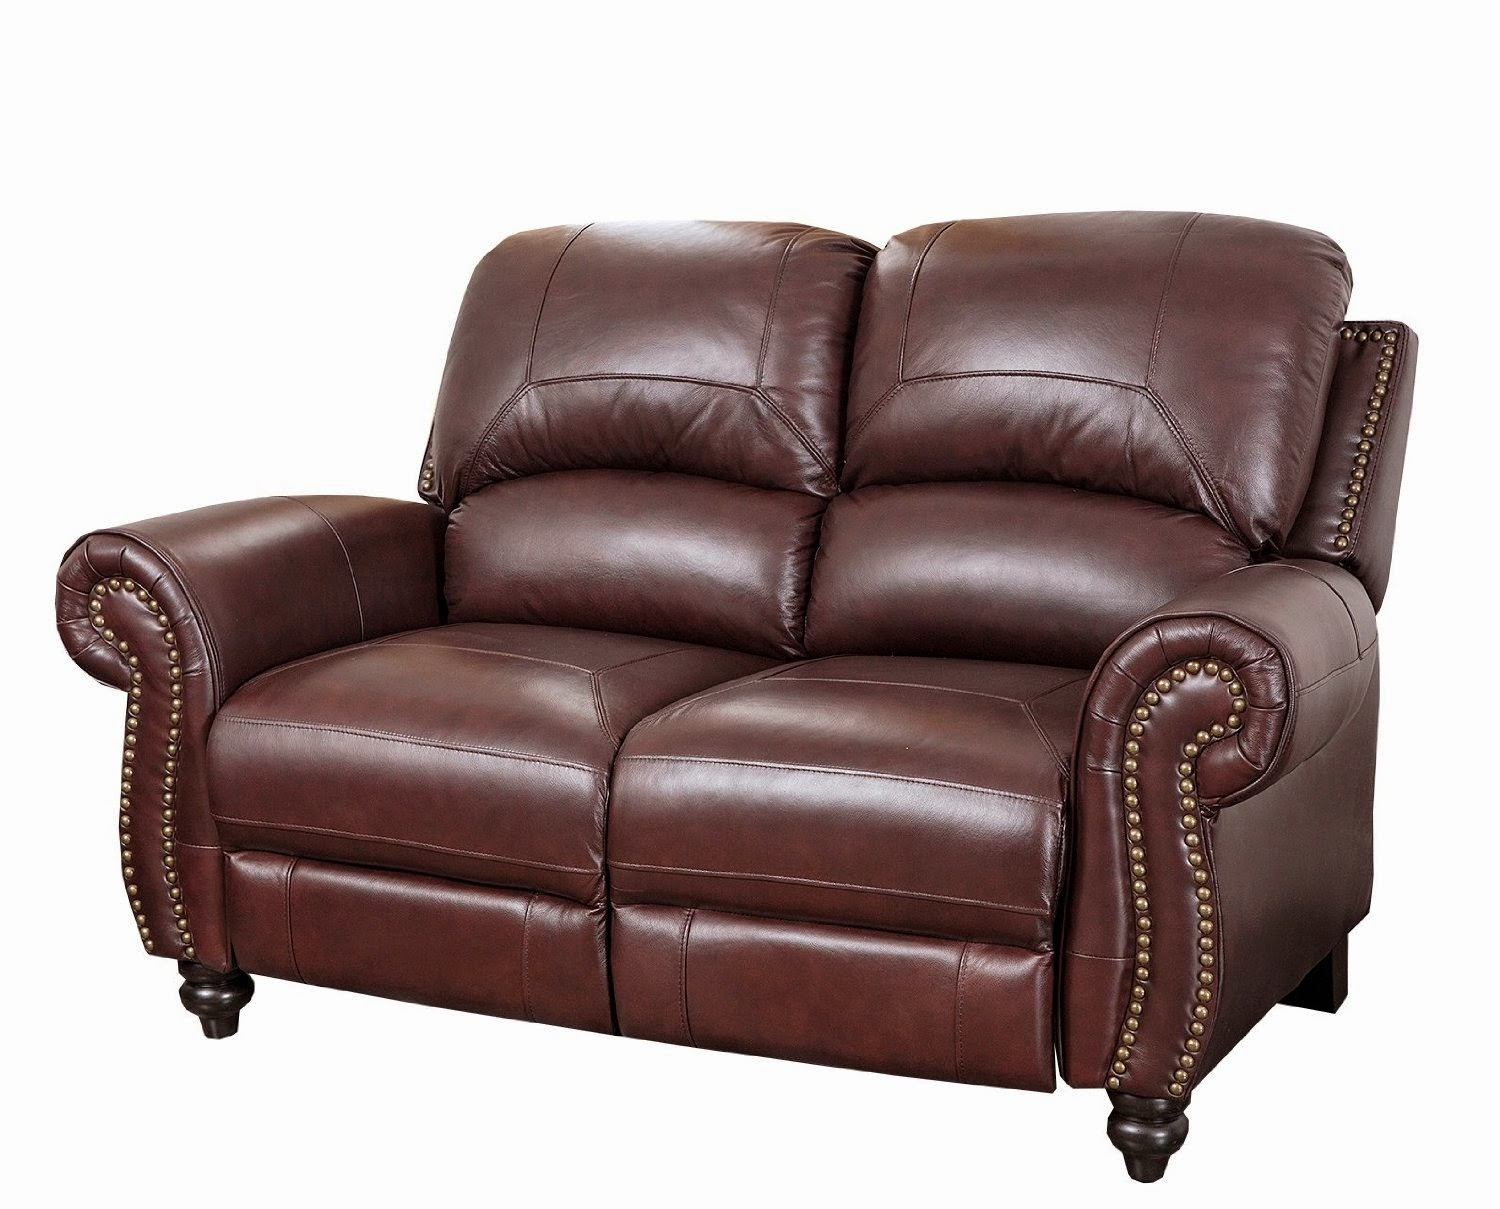 Two Seater Sofa Recliner Home Sofas Best Reclining For The Money Vivaldi 2